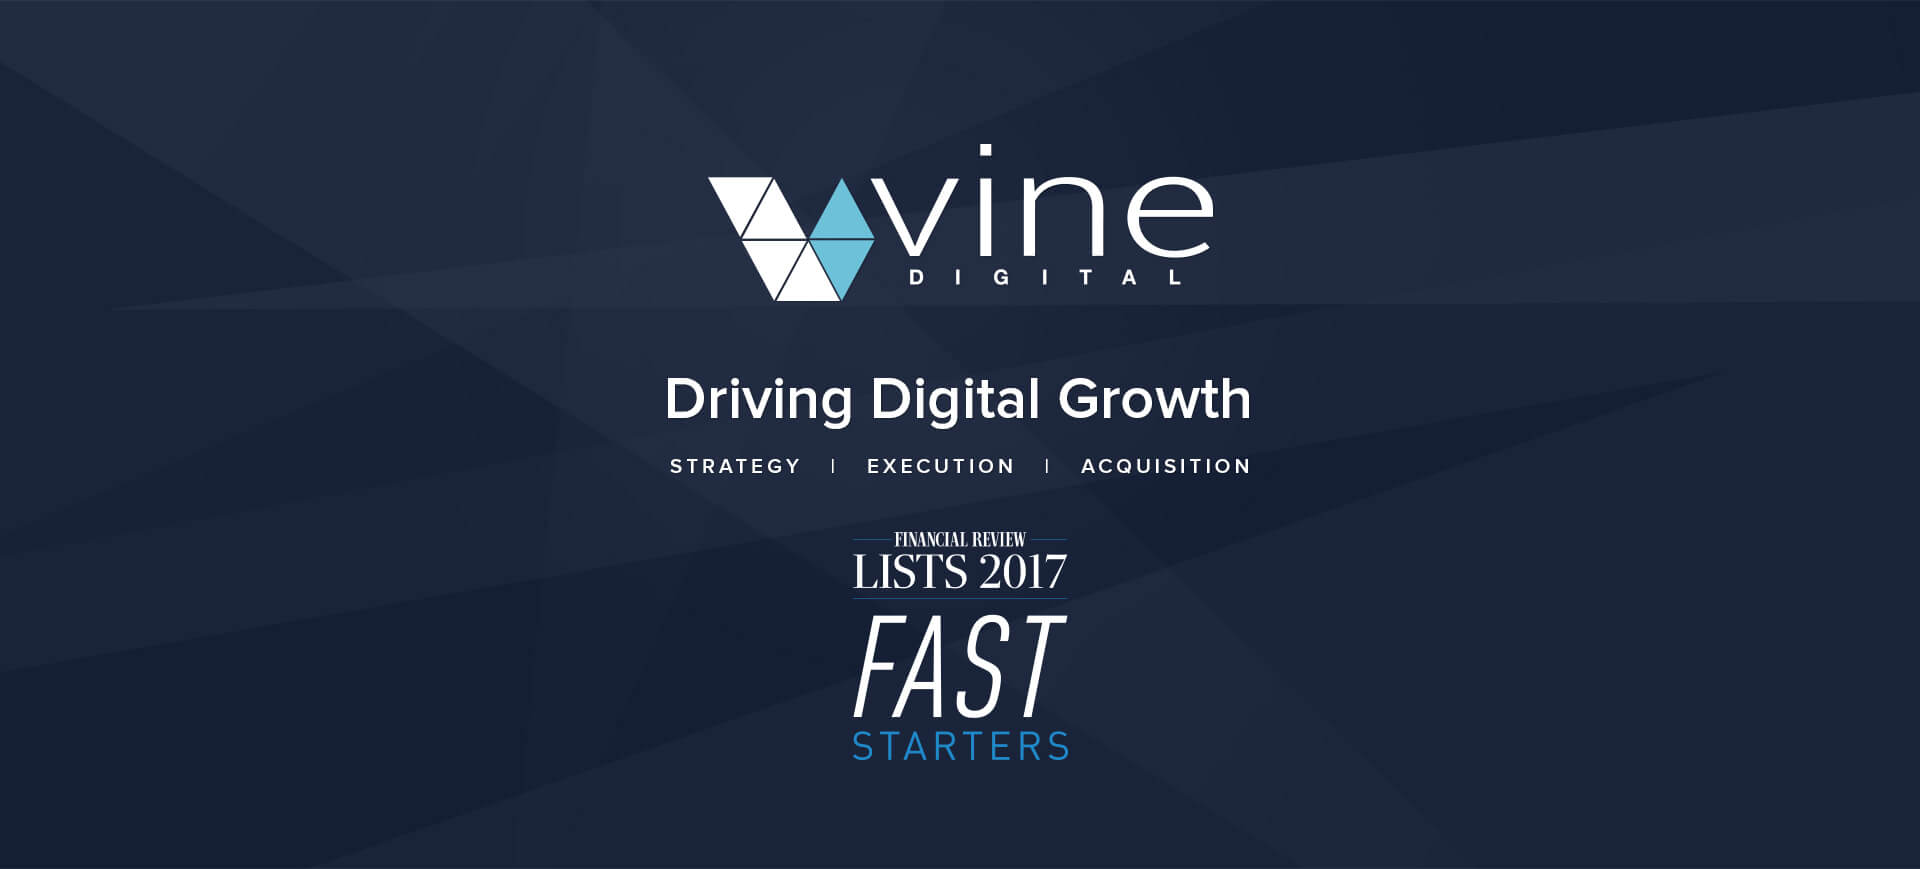 vinedigital afr fast starters list 2017